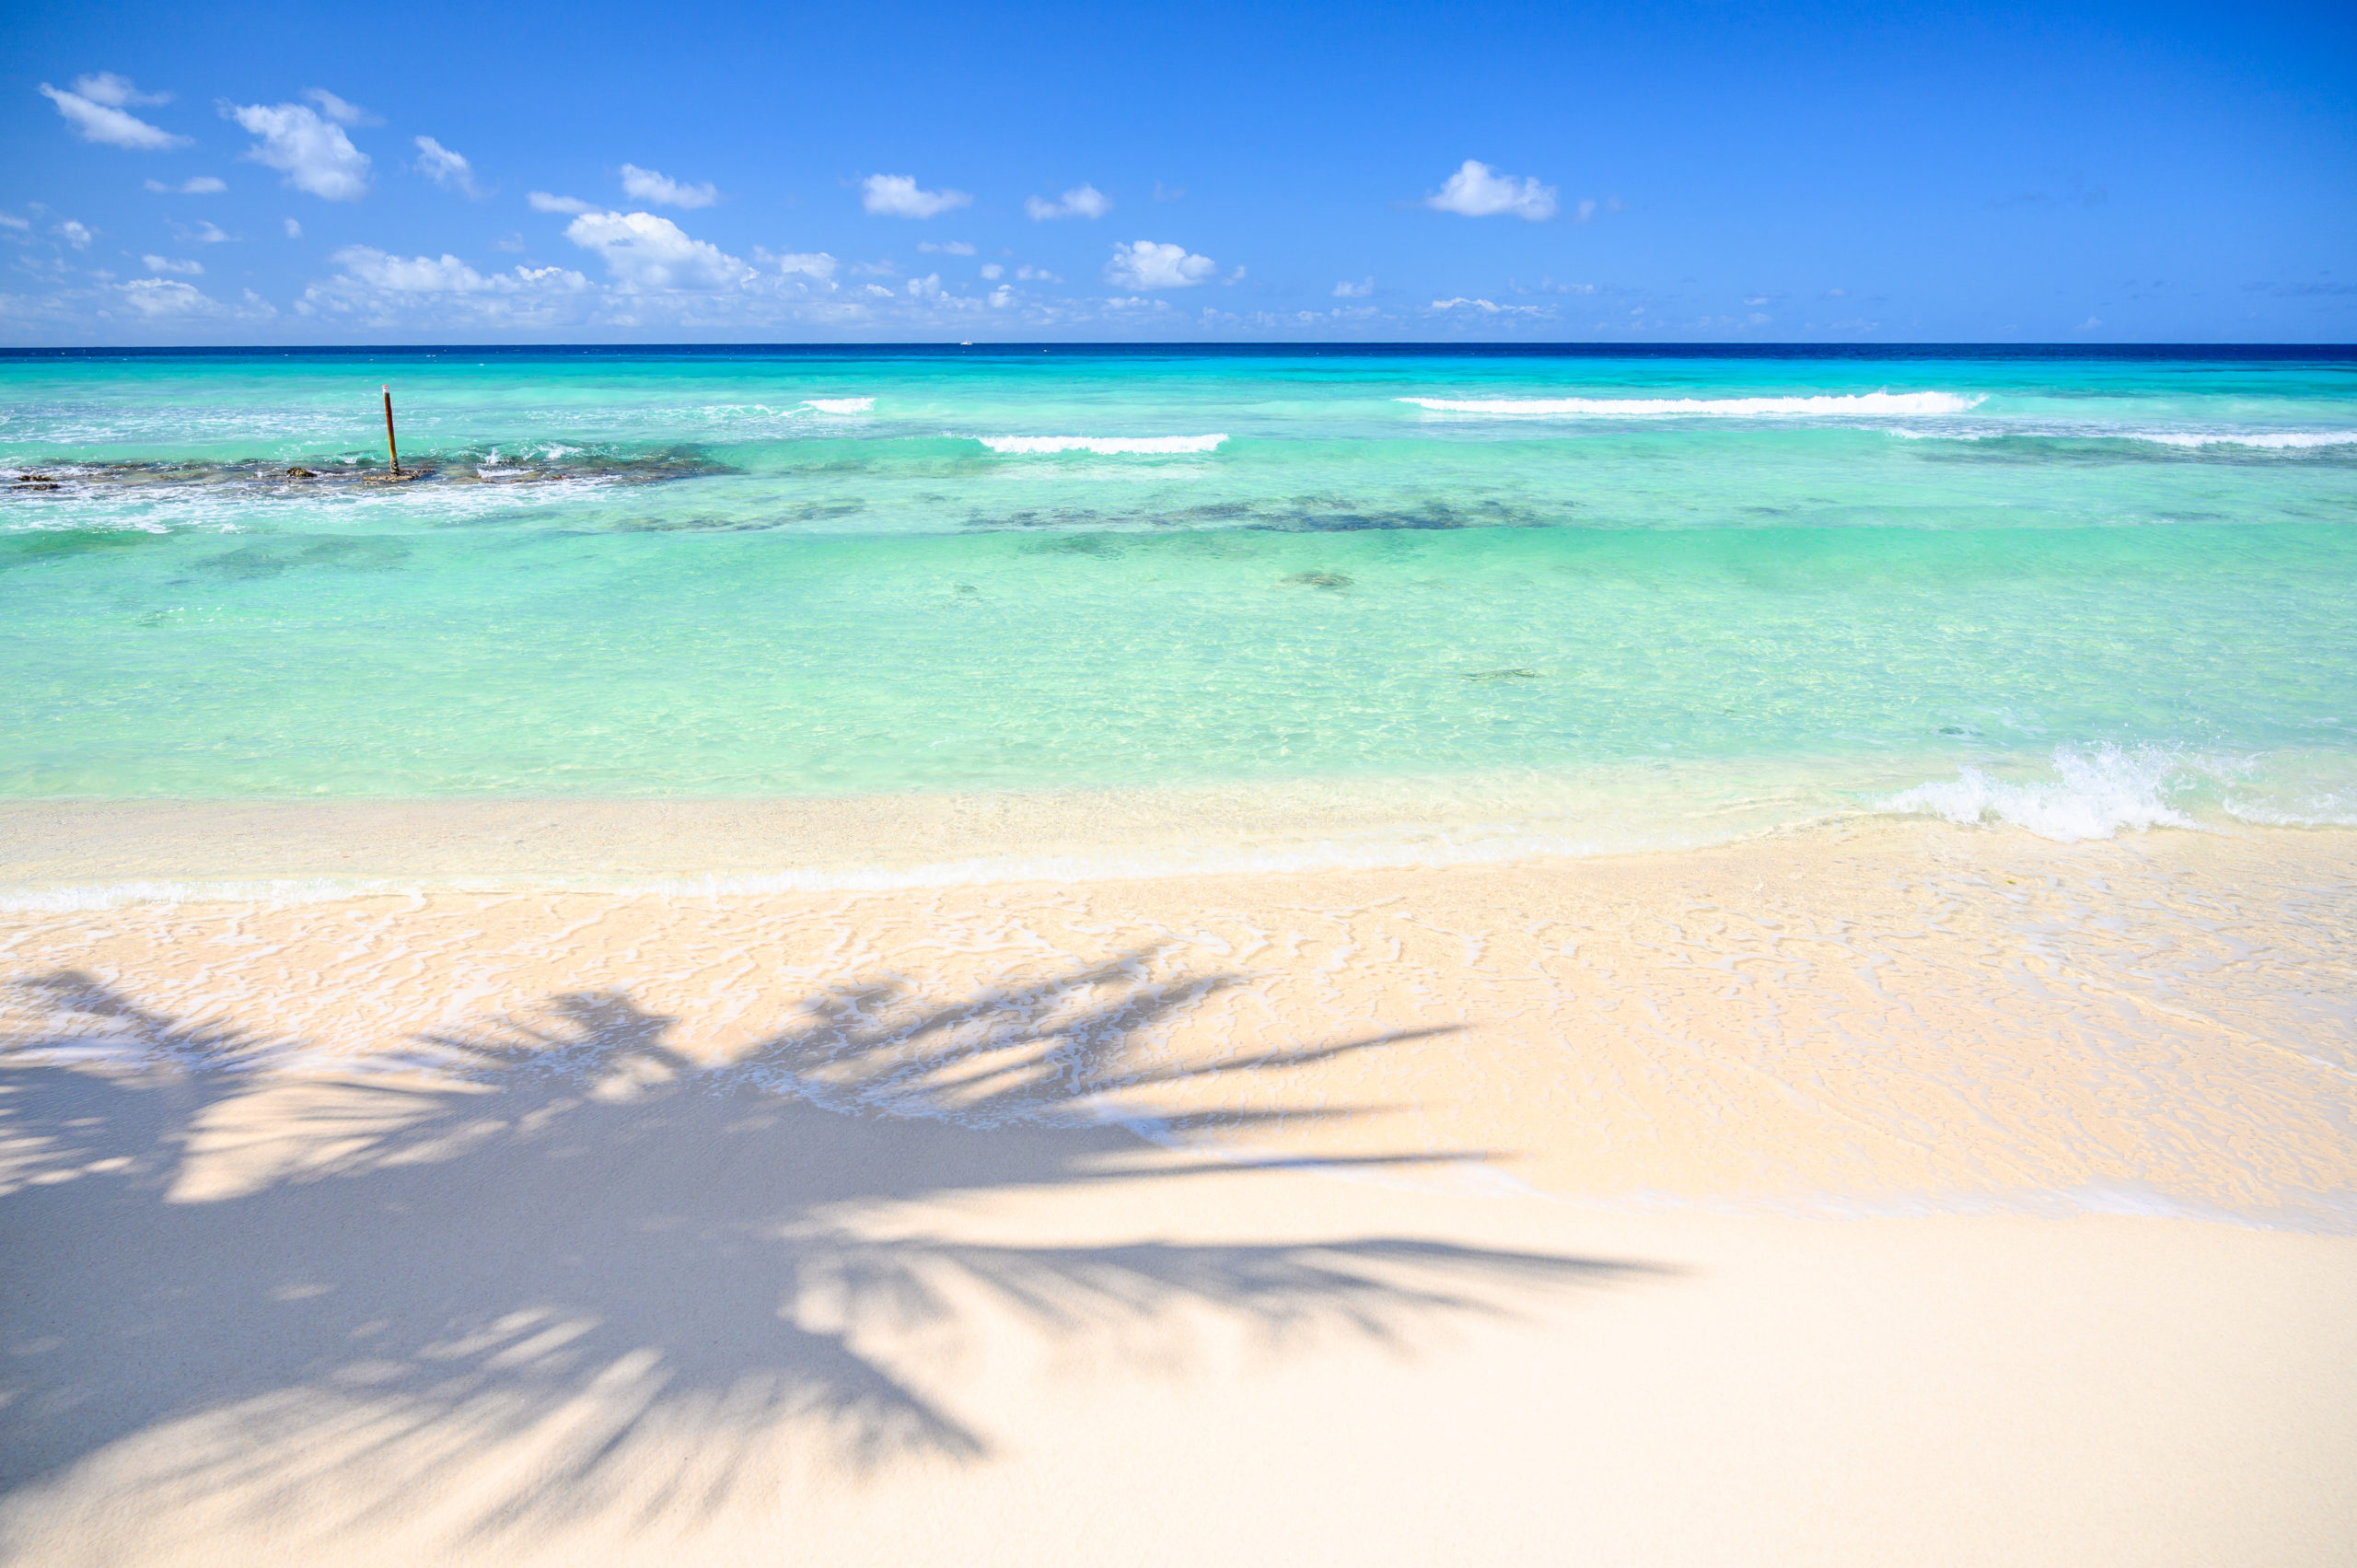 A Barbados Welcome Stamp could make this your office